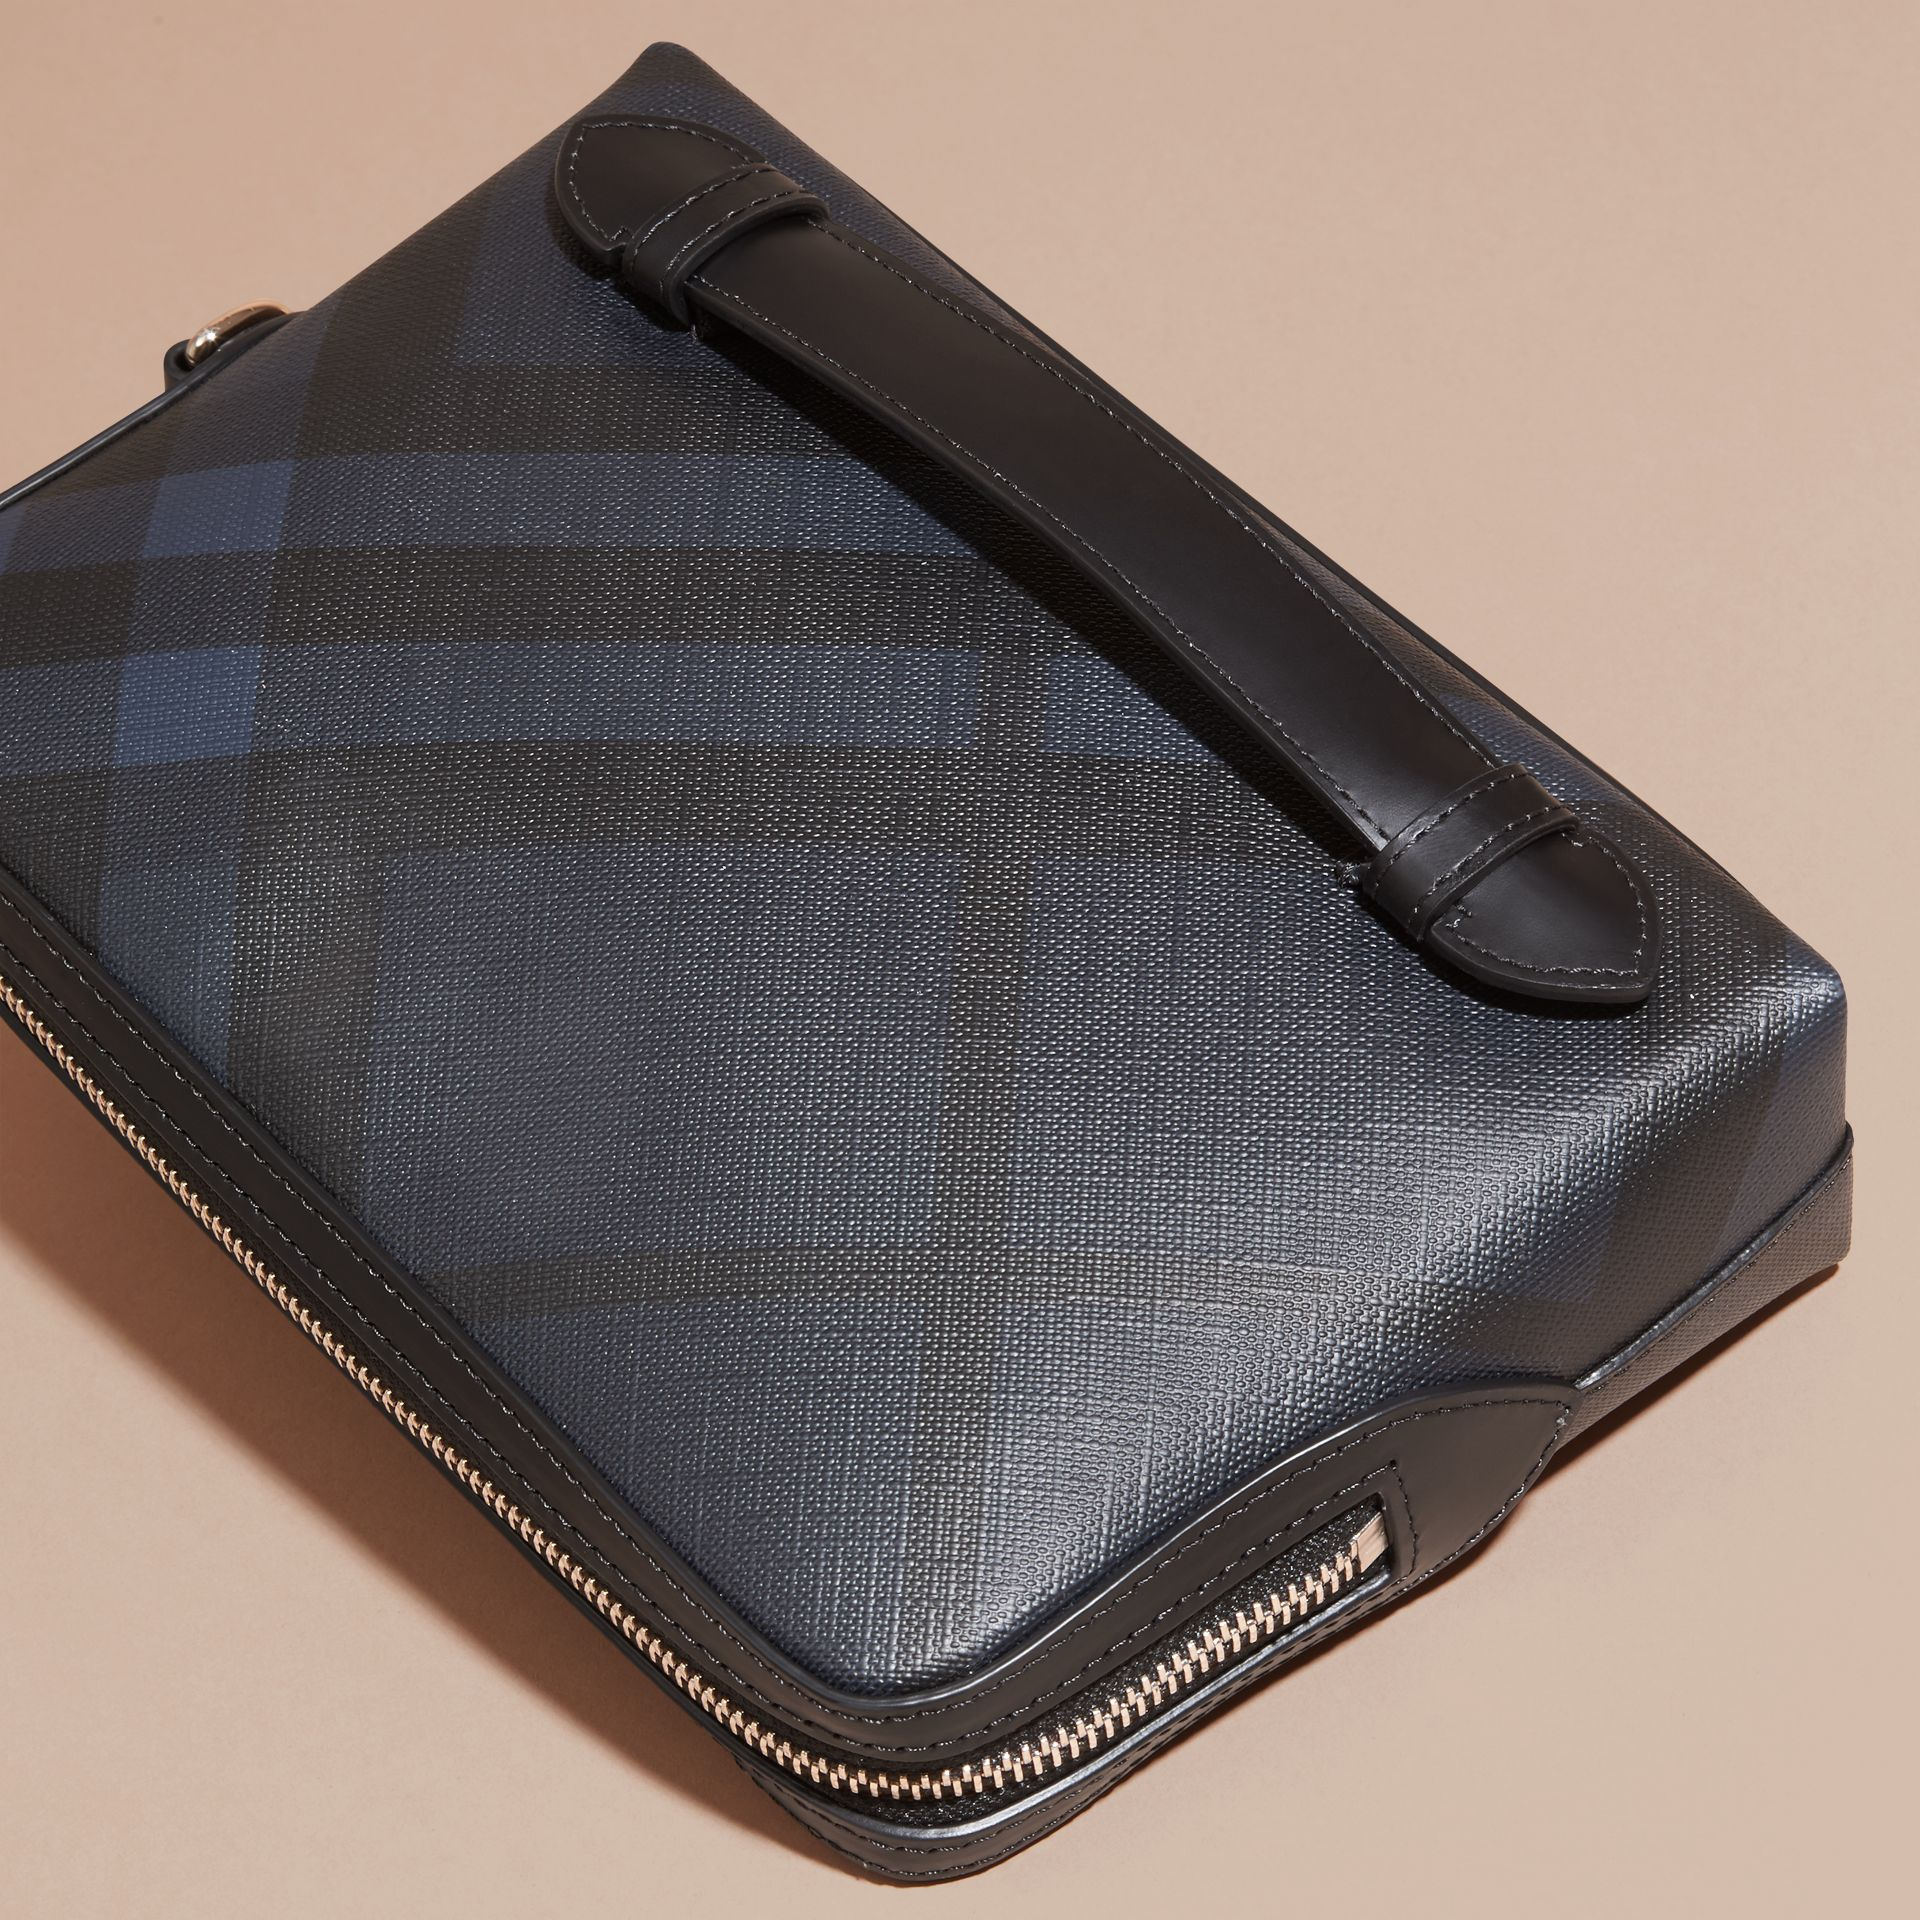 Leather-trimmed London Check Pouch Navy/black - gallery image 4